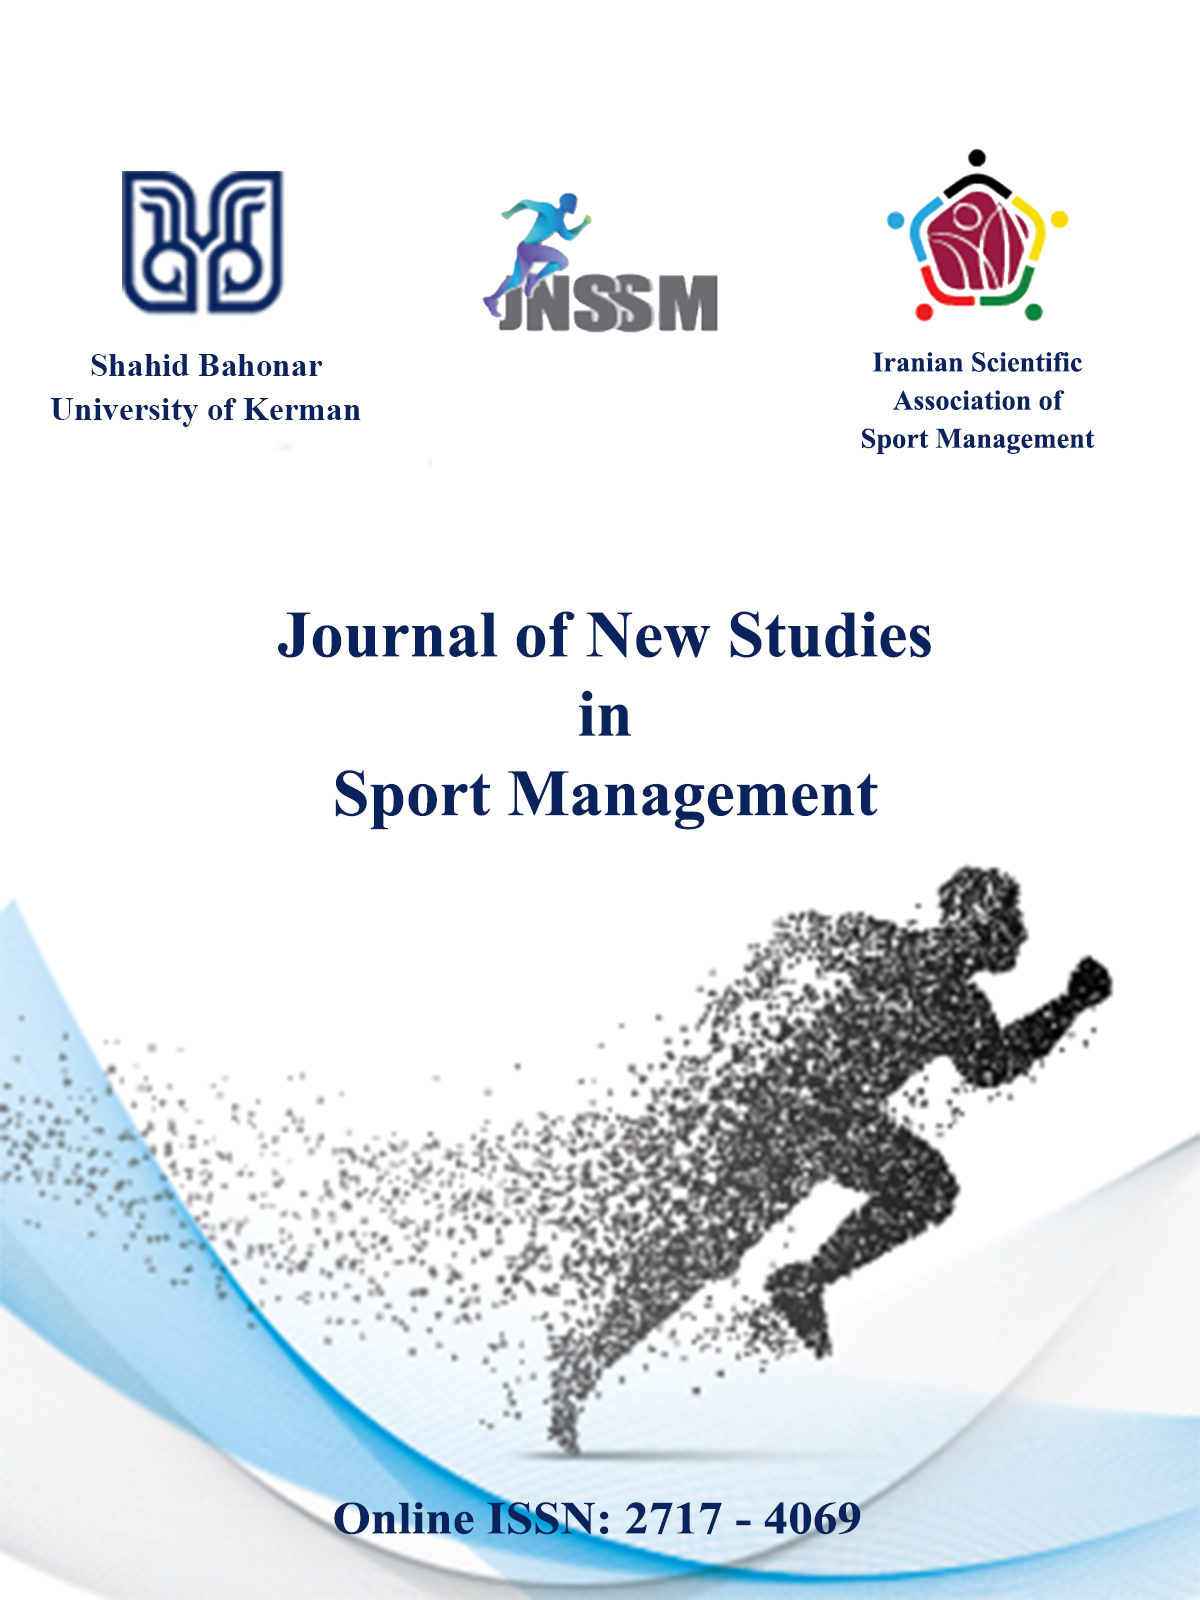 Journal of New Studies in Sport Management